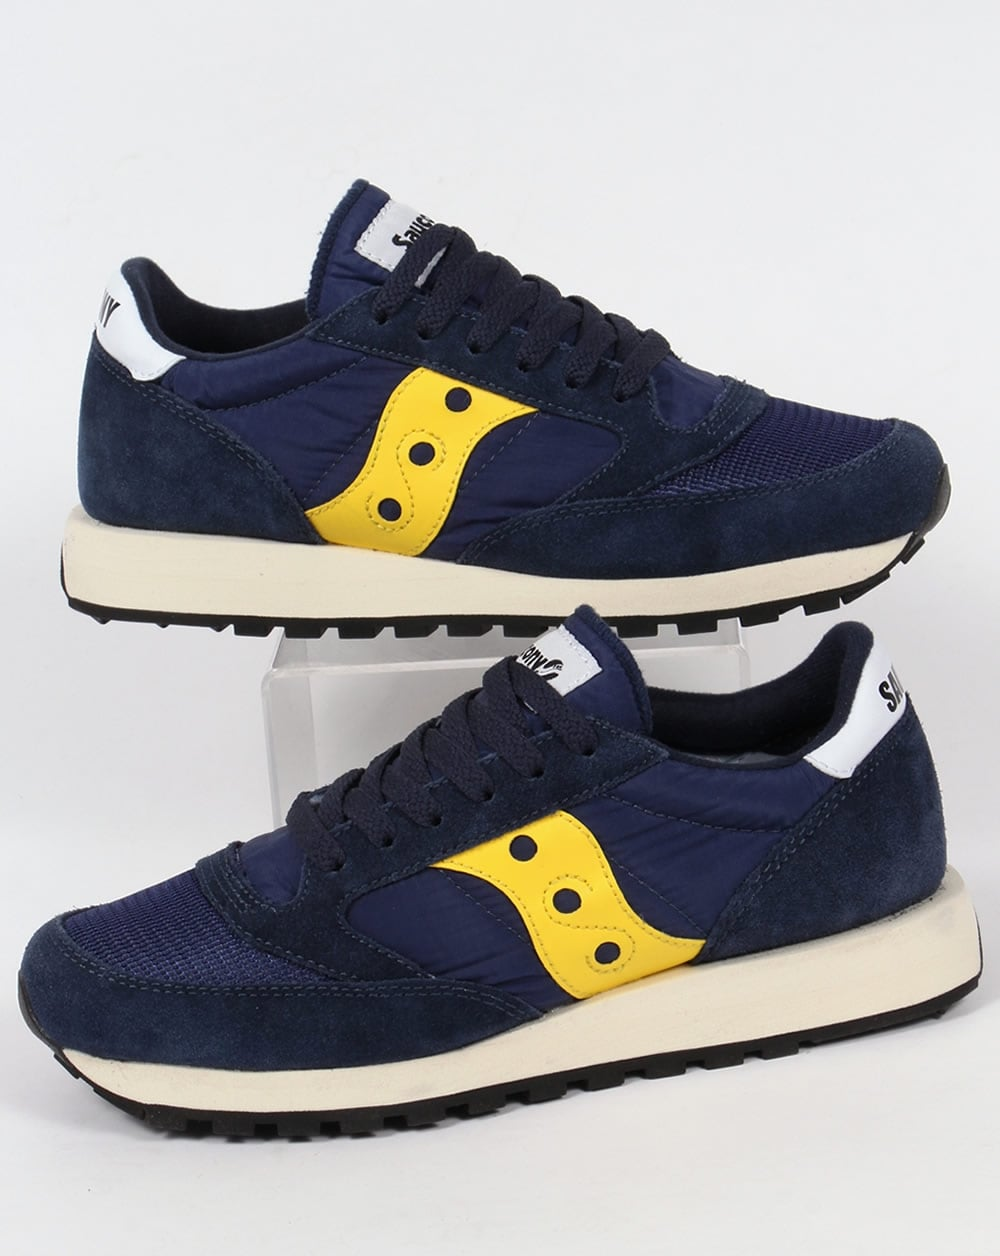 70ce3bac02 Saucony Jazz Original Vintage Trainers Blue/Yellow,runners,shoes,80s ...